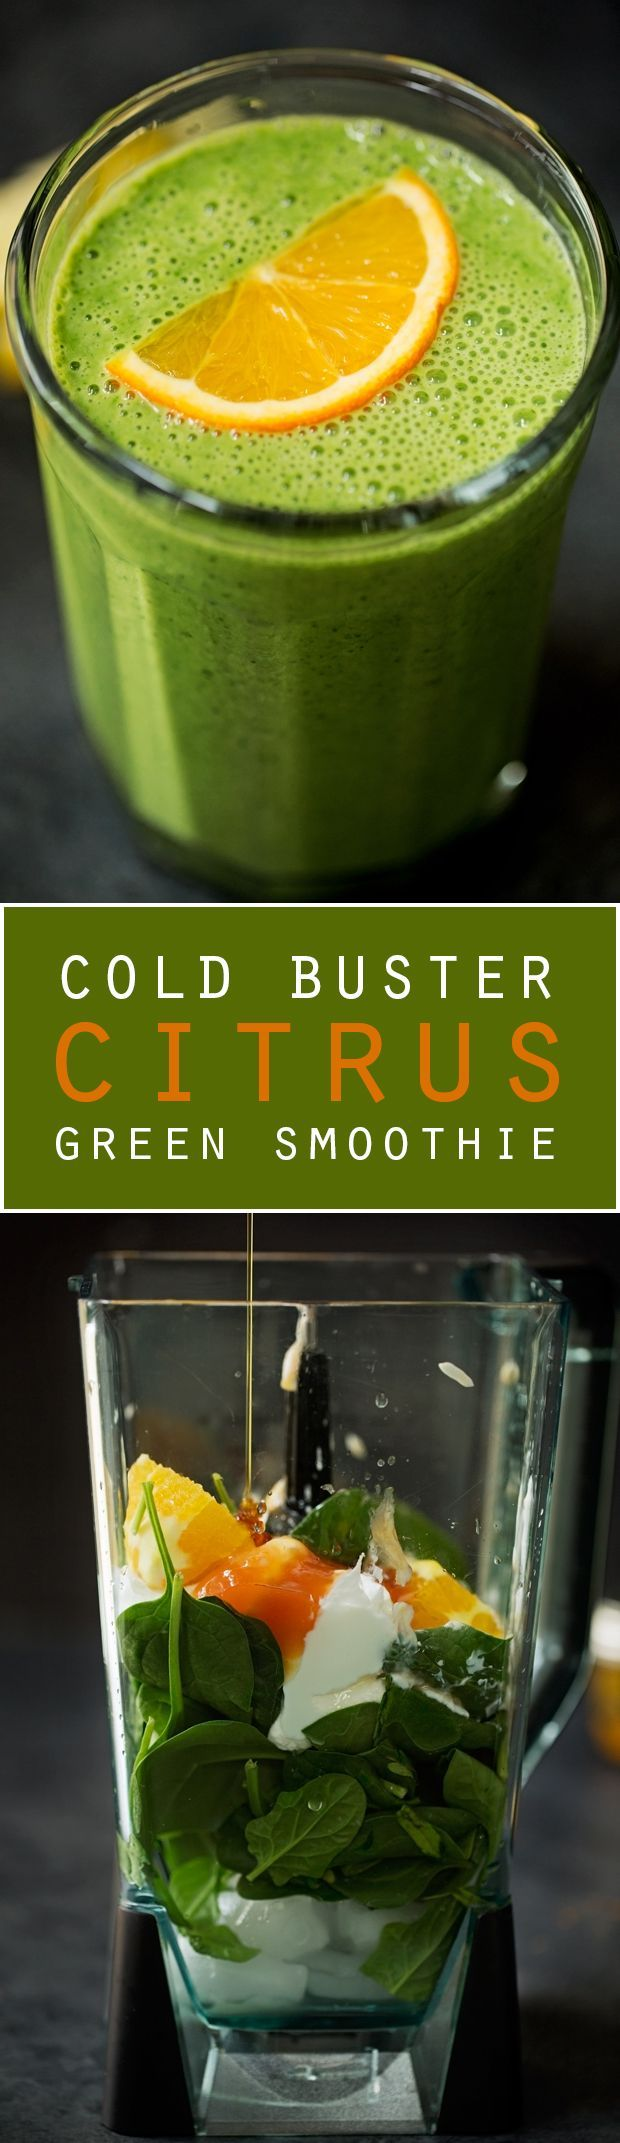 Cold-Buster Citrus Green Smoothie - Loaded with lots of cold fighting ingredients to get you back up on your feet in no time! #greensmoothie #citrusgreensmoothie #coldbustersmoothie | Littlespicejar.com